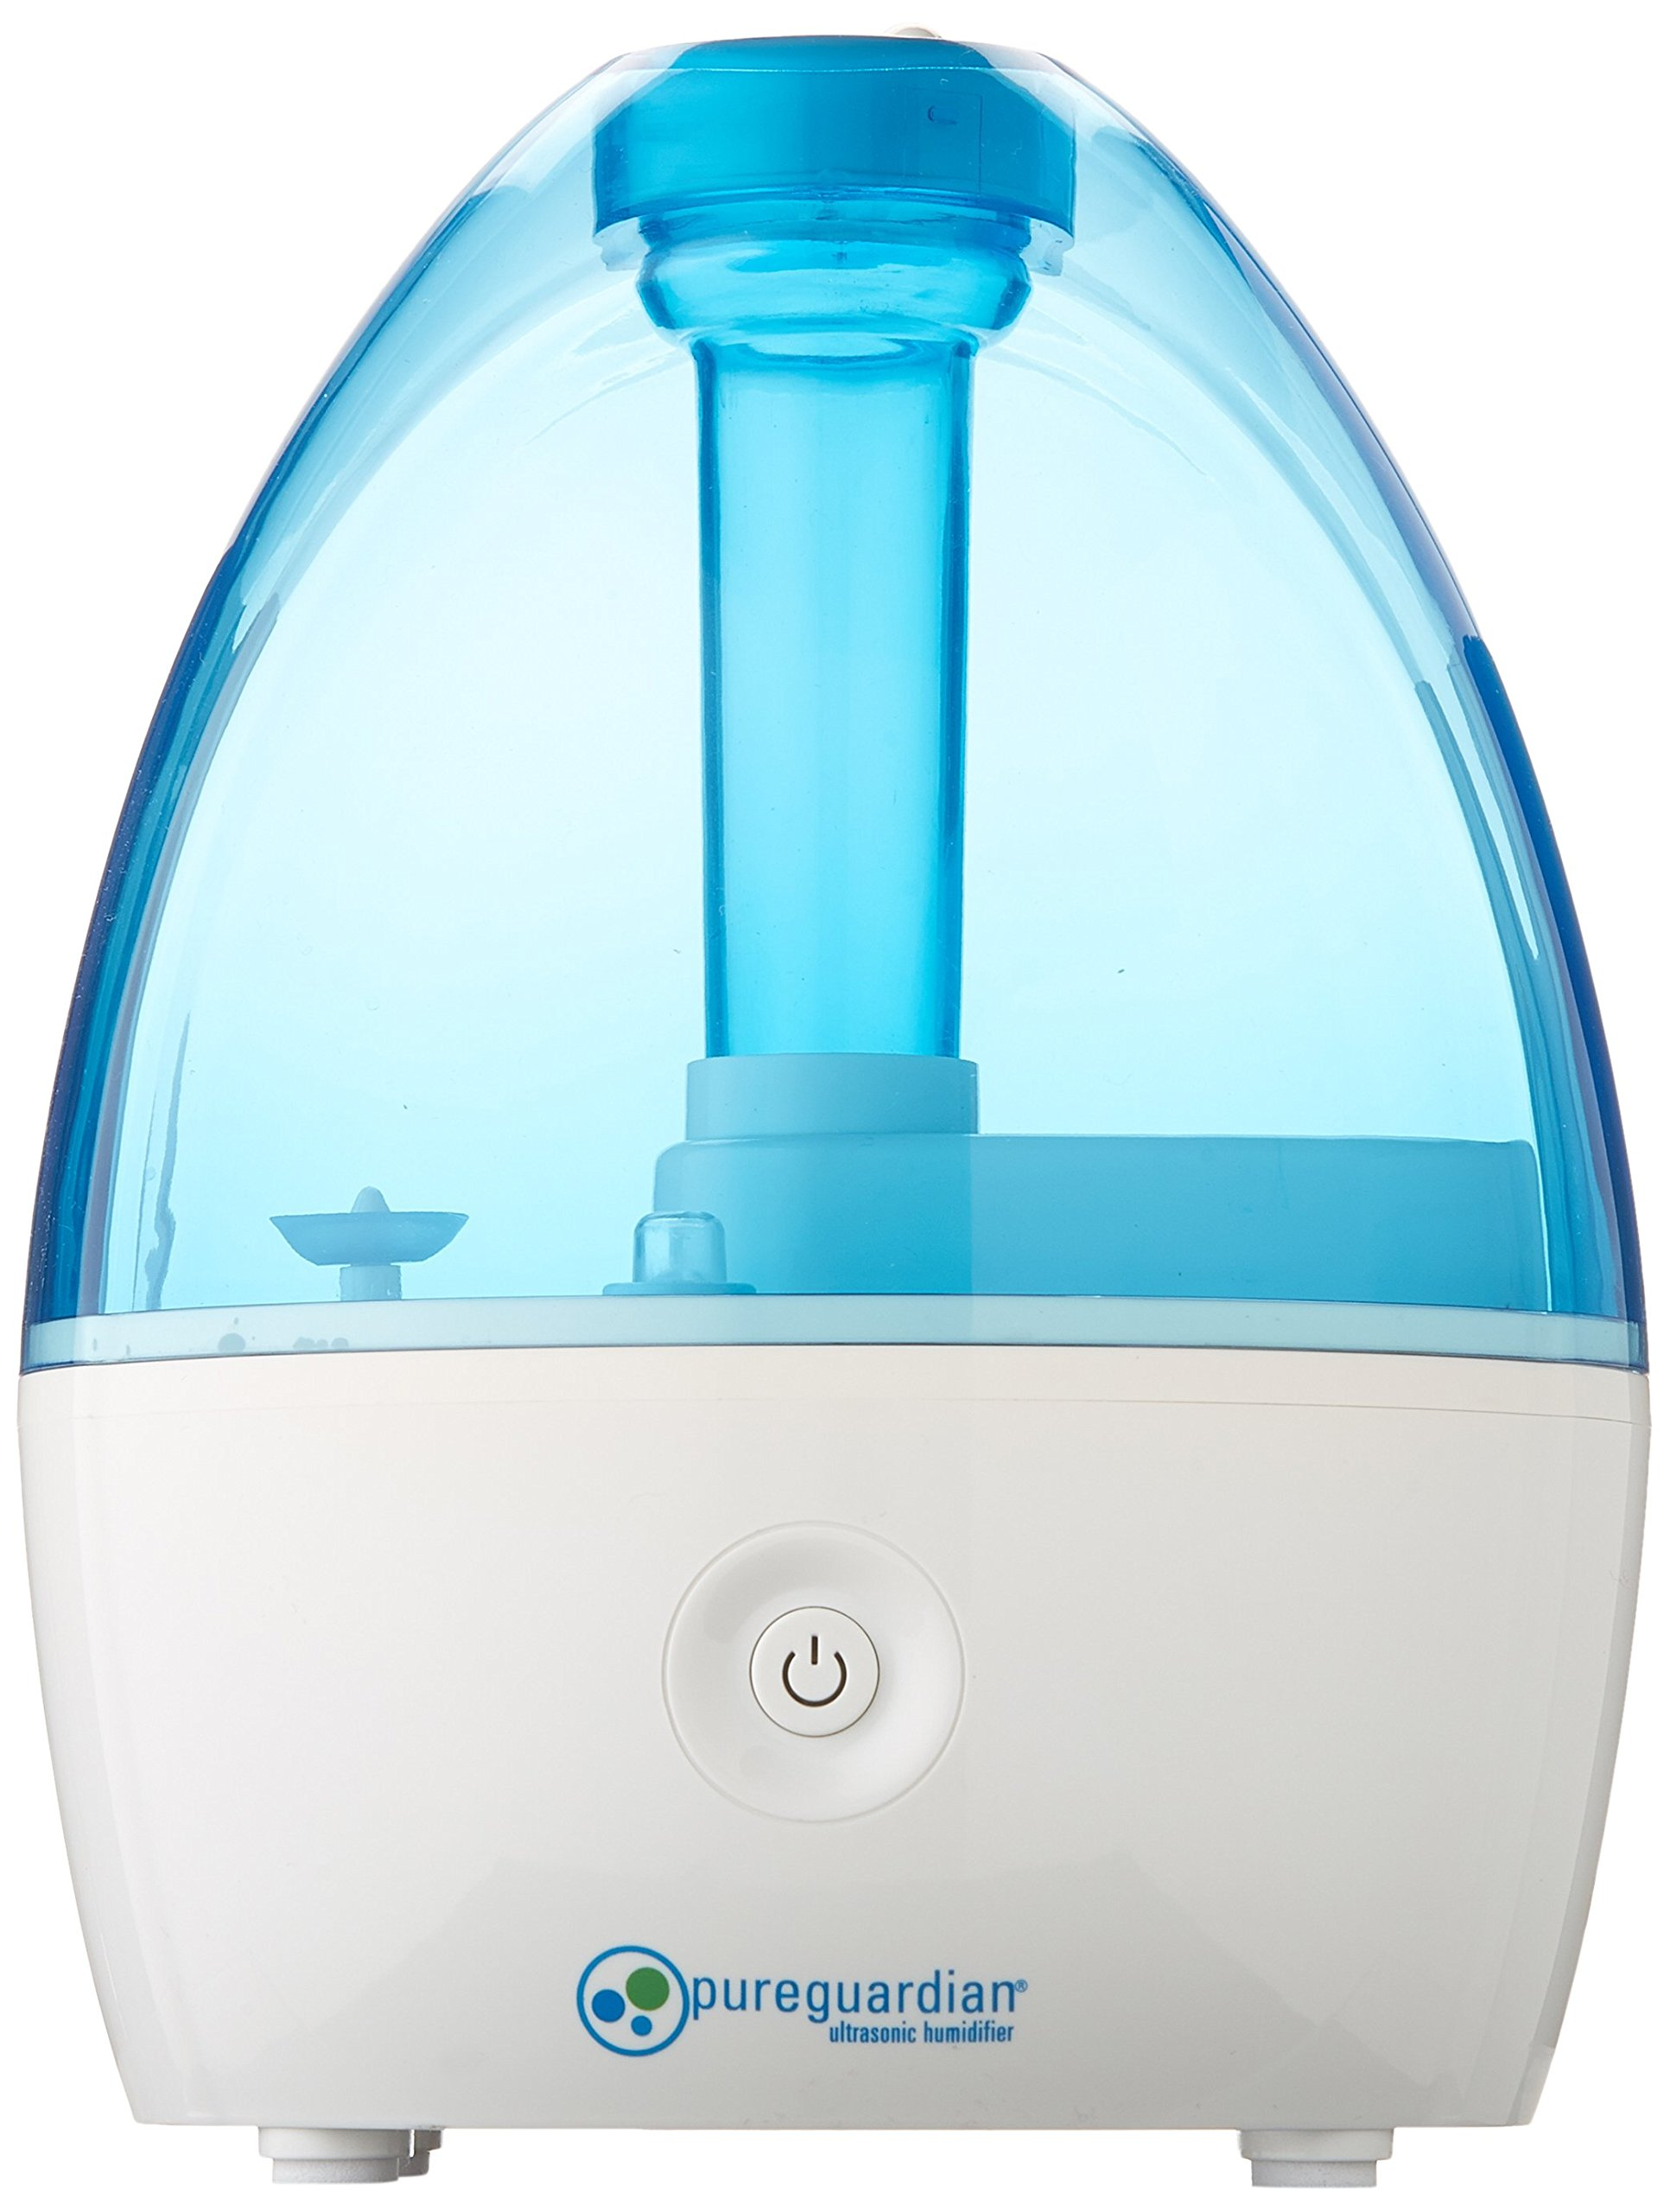 PureGuardian H910BL Ultrasonic Cool Mist Humidifier for Bedrooms, Babies Nursery, Quiet, Filter-Free, Up to 14 Hour Run Time, Treated Tank Surface Resists Mold, Pure Guardian Desktop by Guardian Technologies